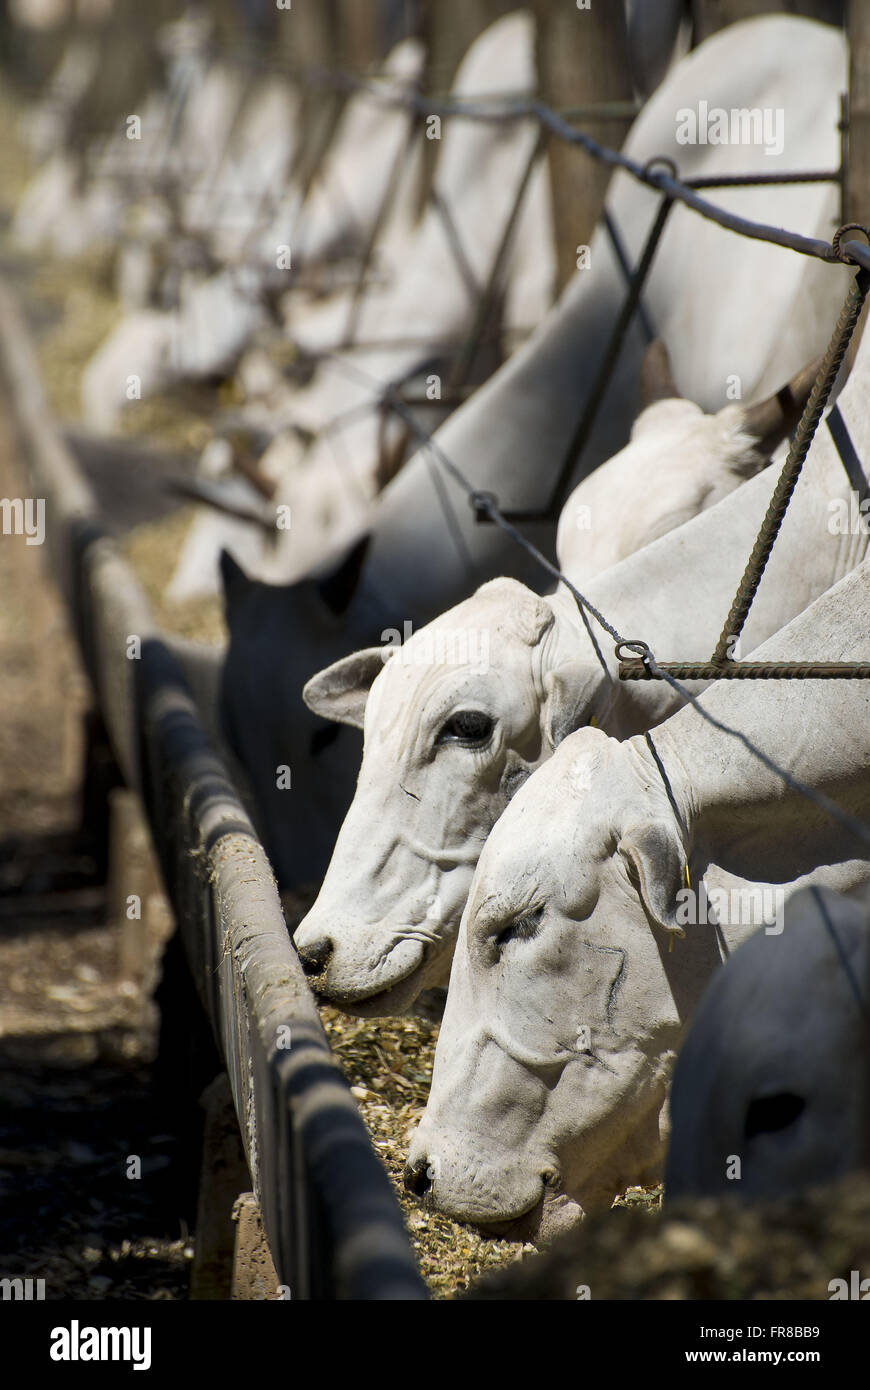 Cattle eating in trough confined Nellore - Stock Image